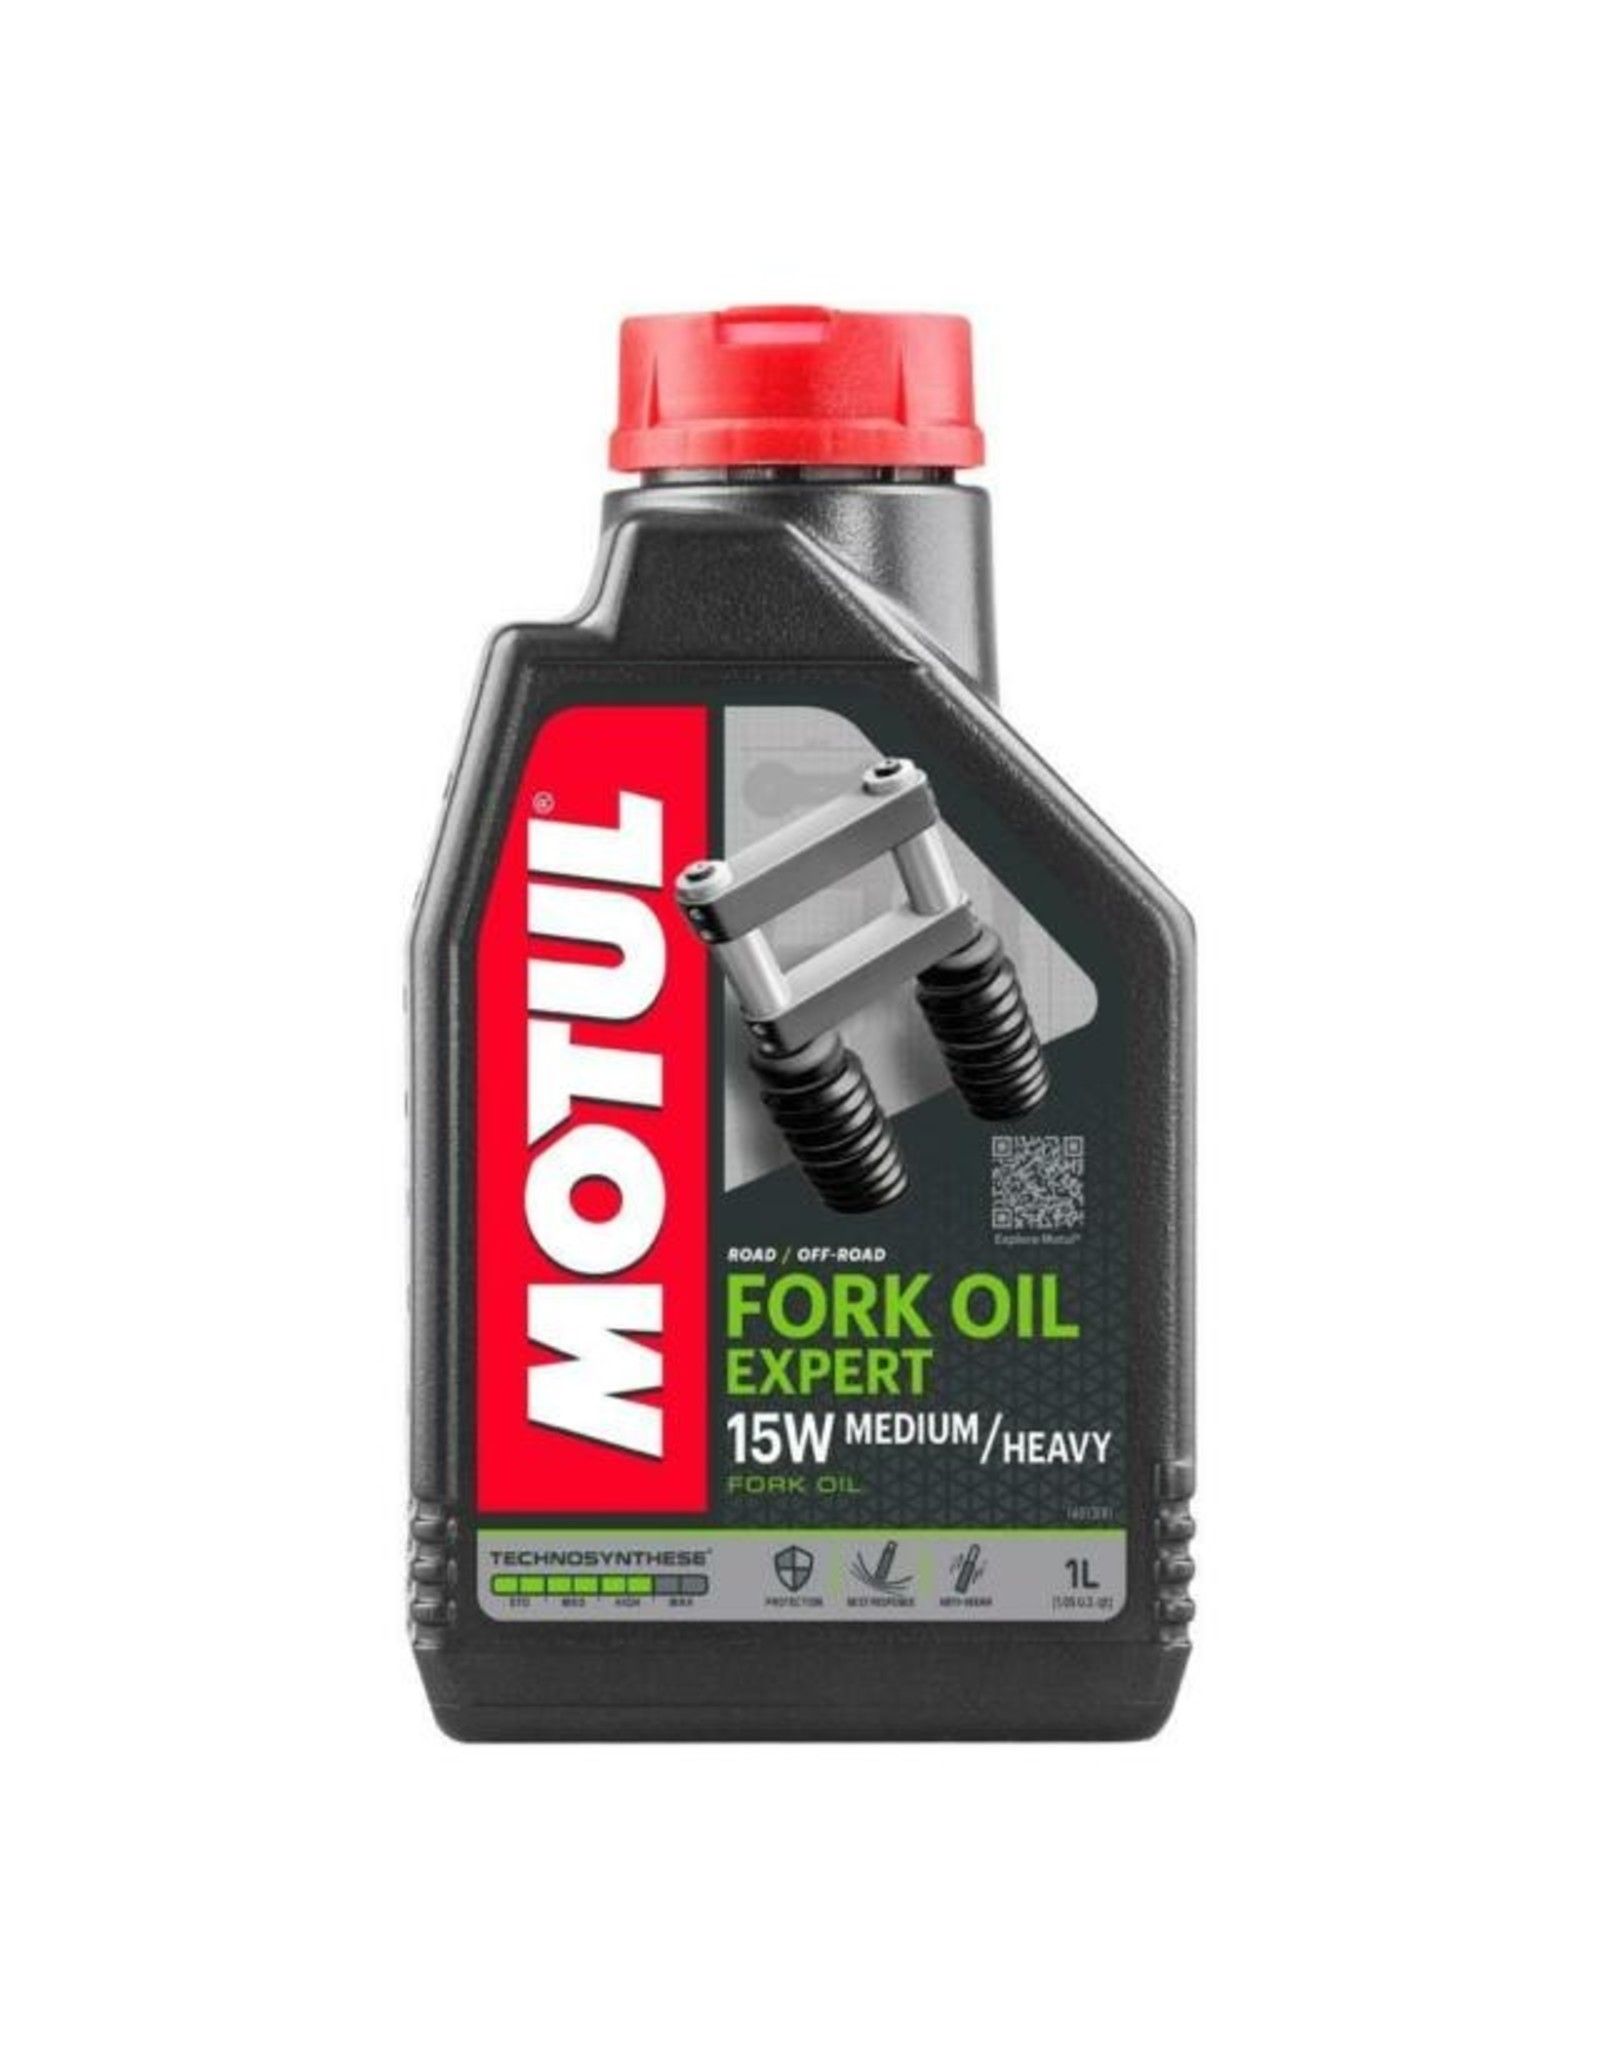 Motul Motul Fork Oil Expert 15W Medium/Heavy 1Ltr